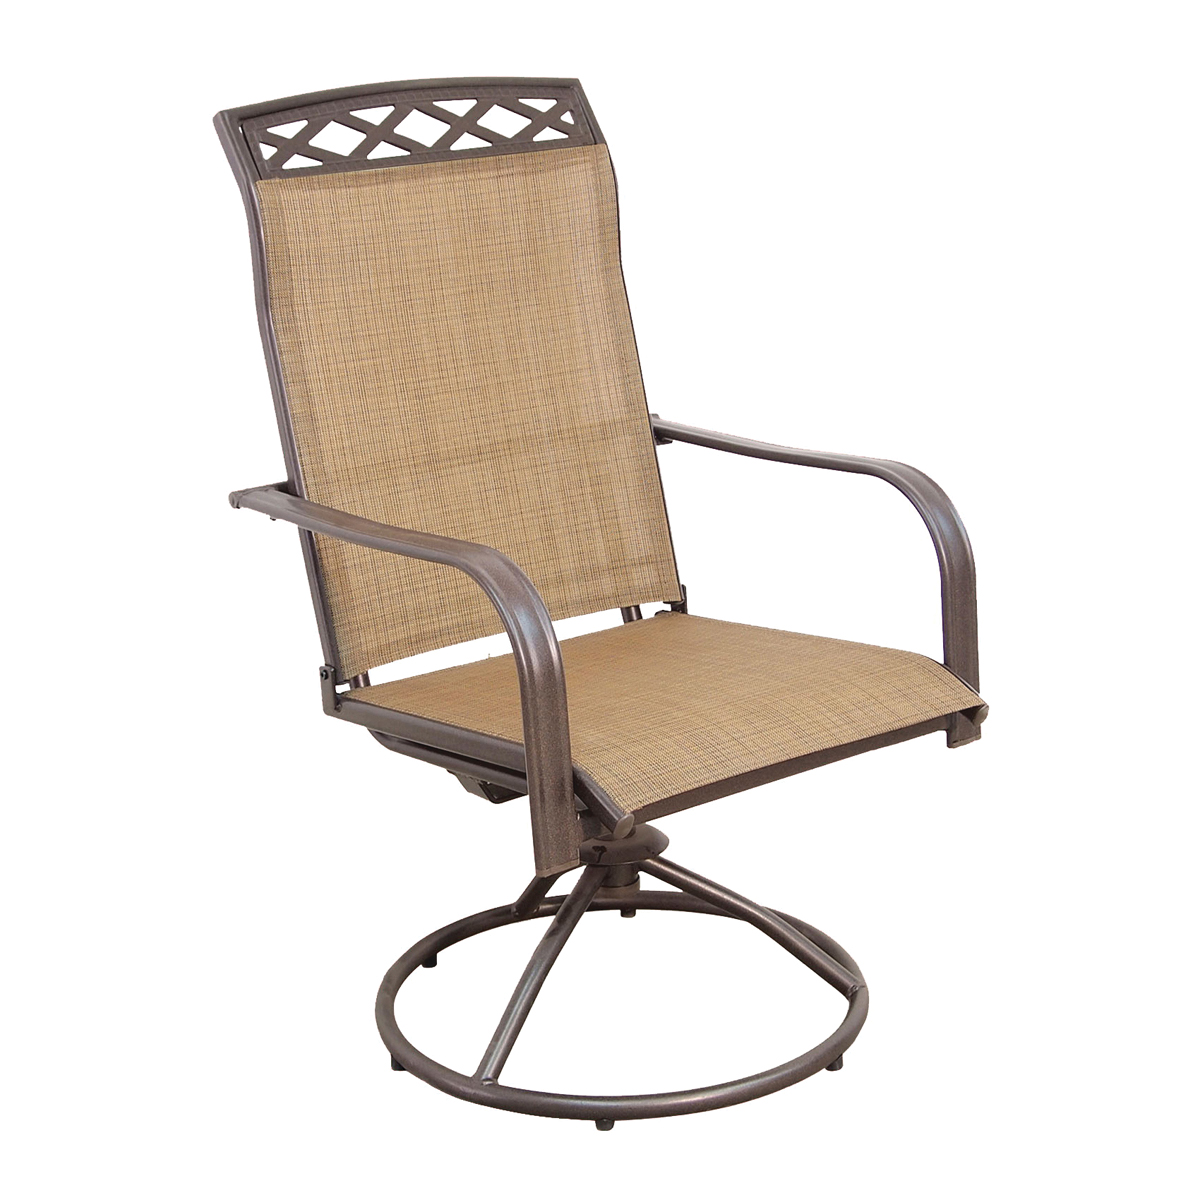 Picture of Seasonal Trends S4254SJ33SL04 Rocker Swivel Sling Chair, 24 in OAW, 28.74 in OAD, 41.14 in OAH, Steel